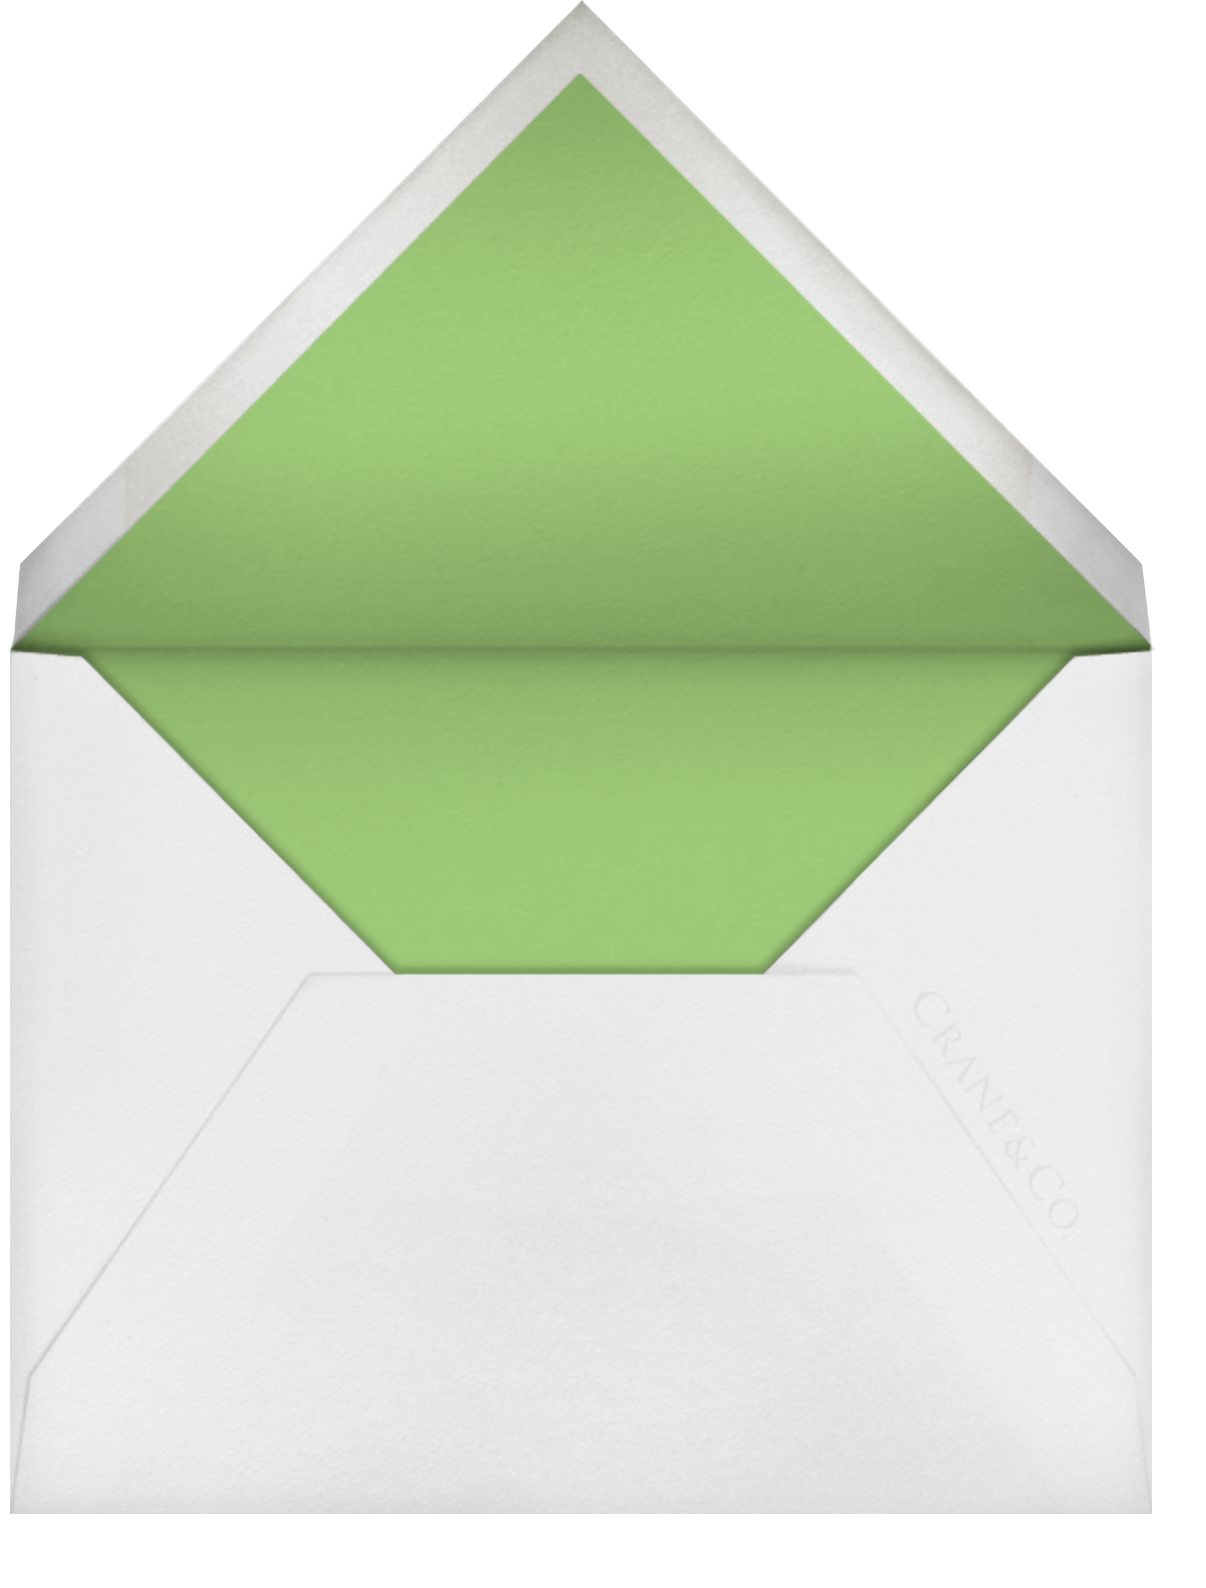 Collins Avenue - Charcoal Gray & Spring Green - Crane & Co. - All - envelope back